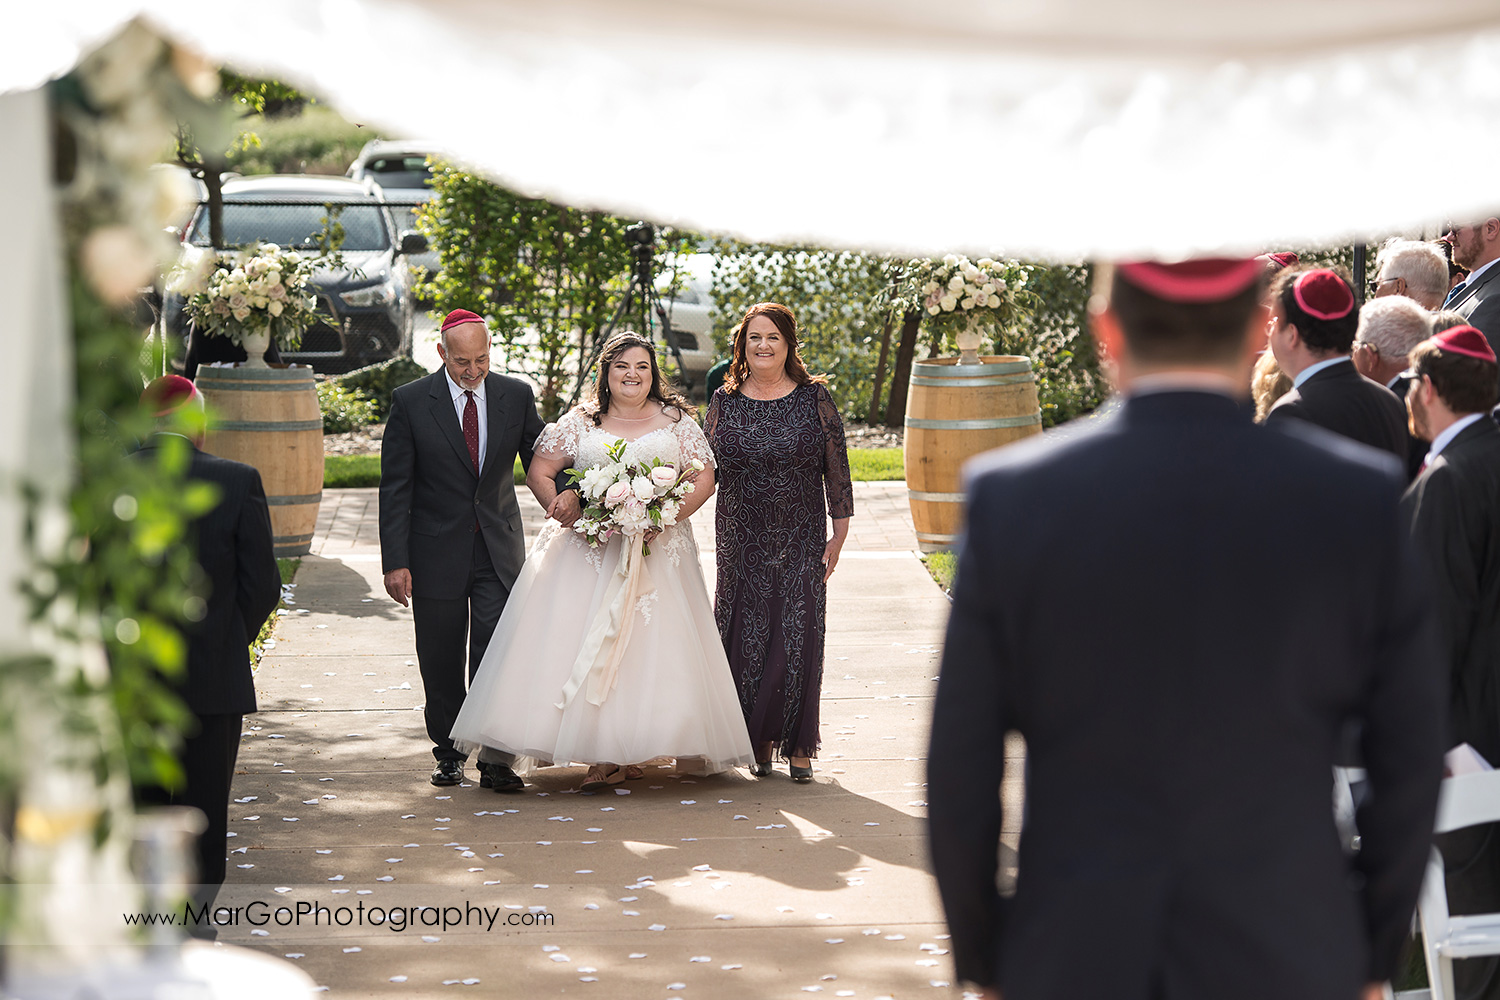 jewish bride walking down the aisle with her parrents during wedding ceremony at Livermore Garre Vineyard and Winery